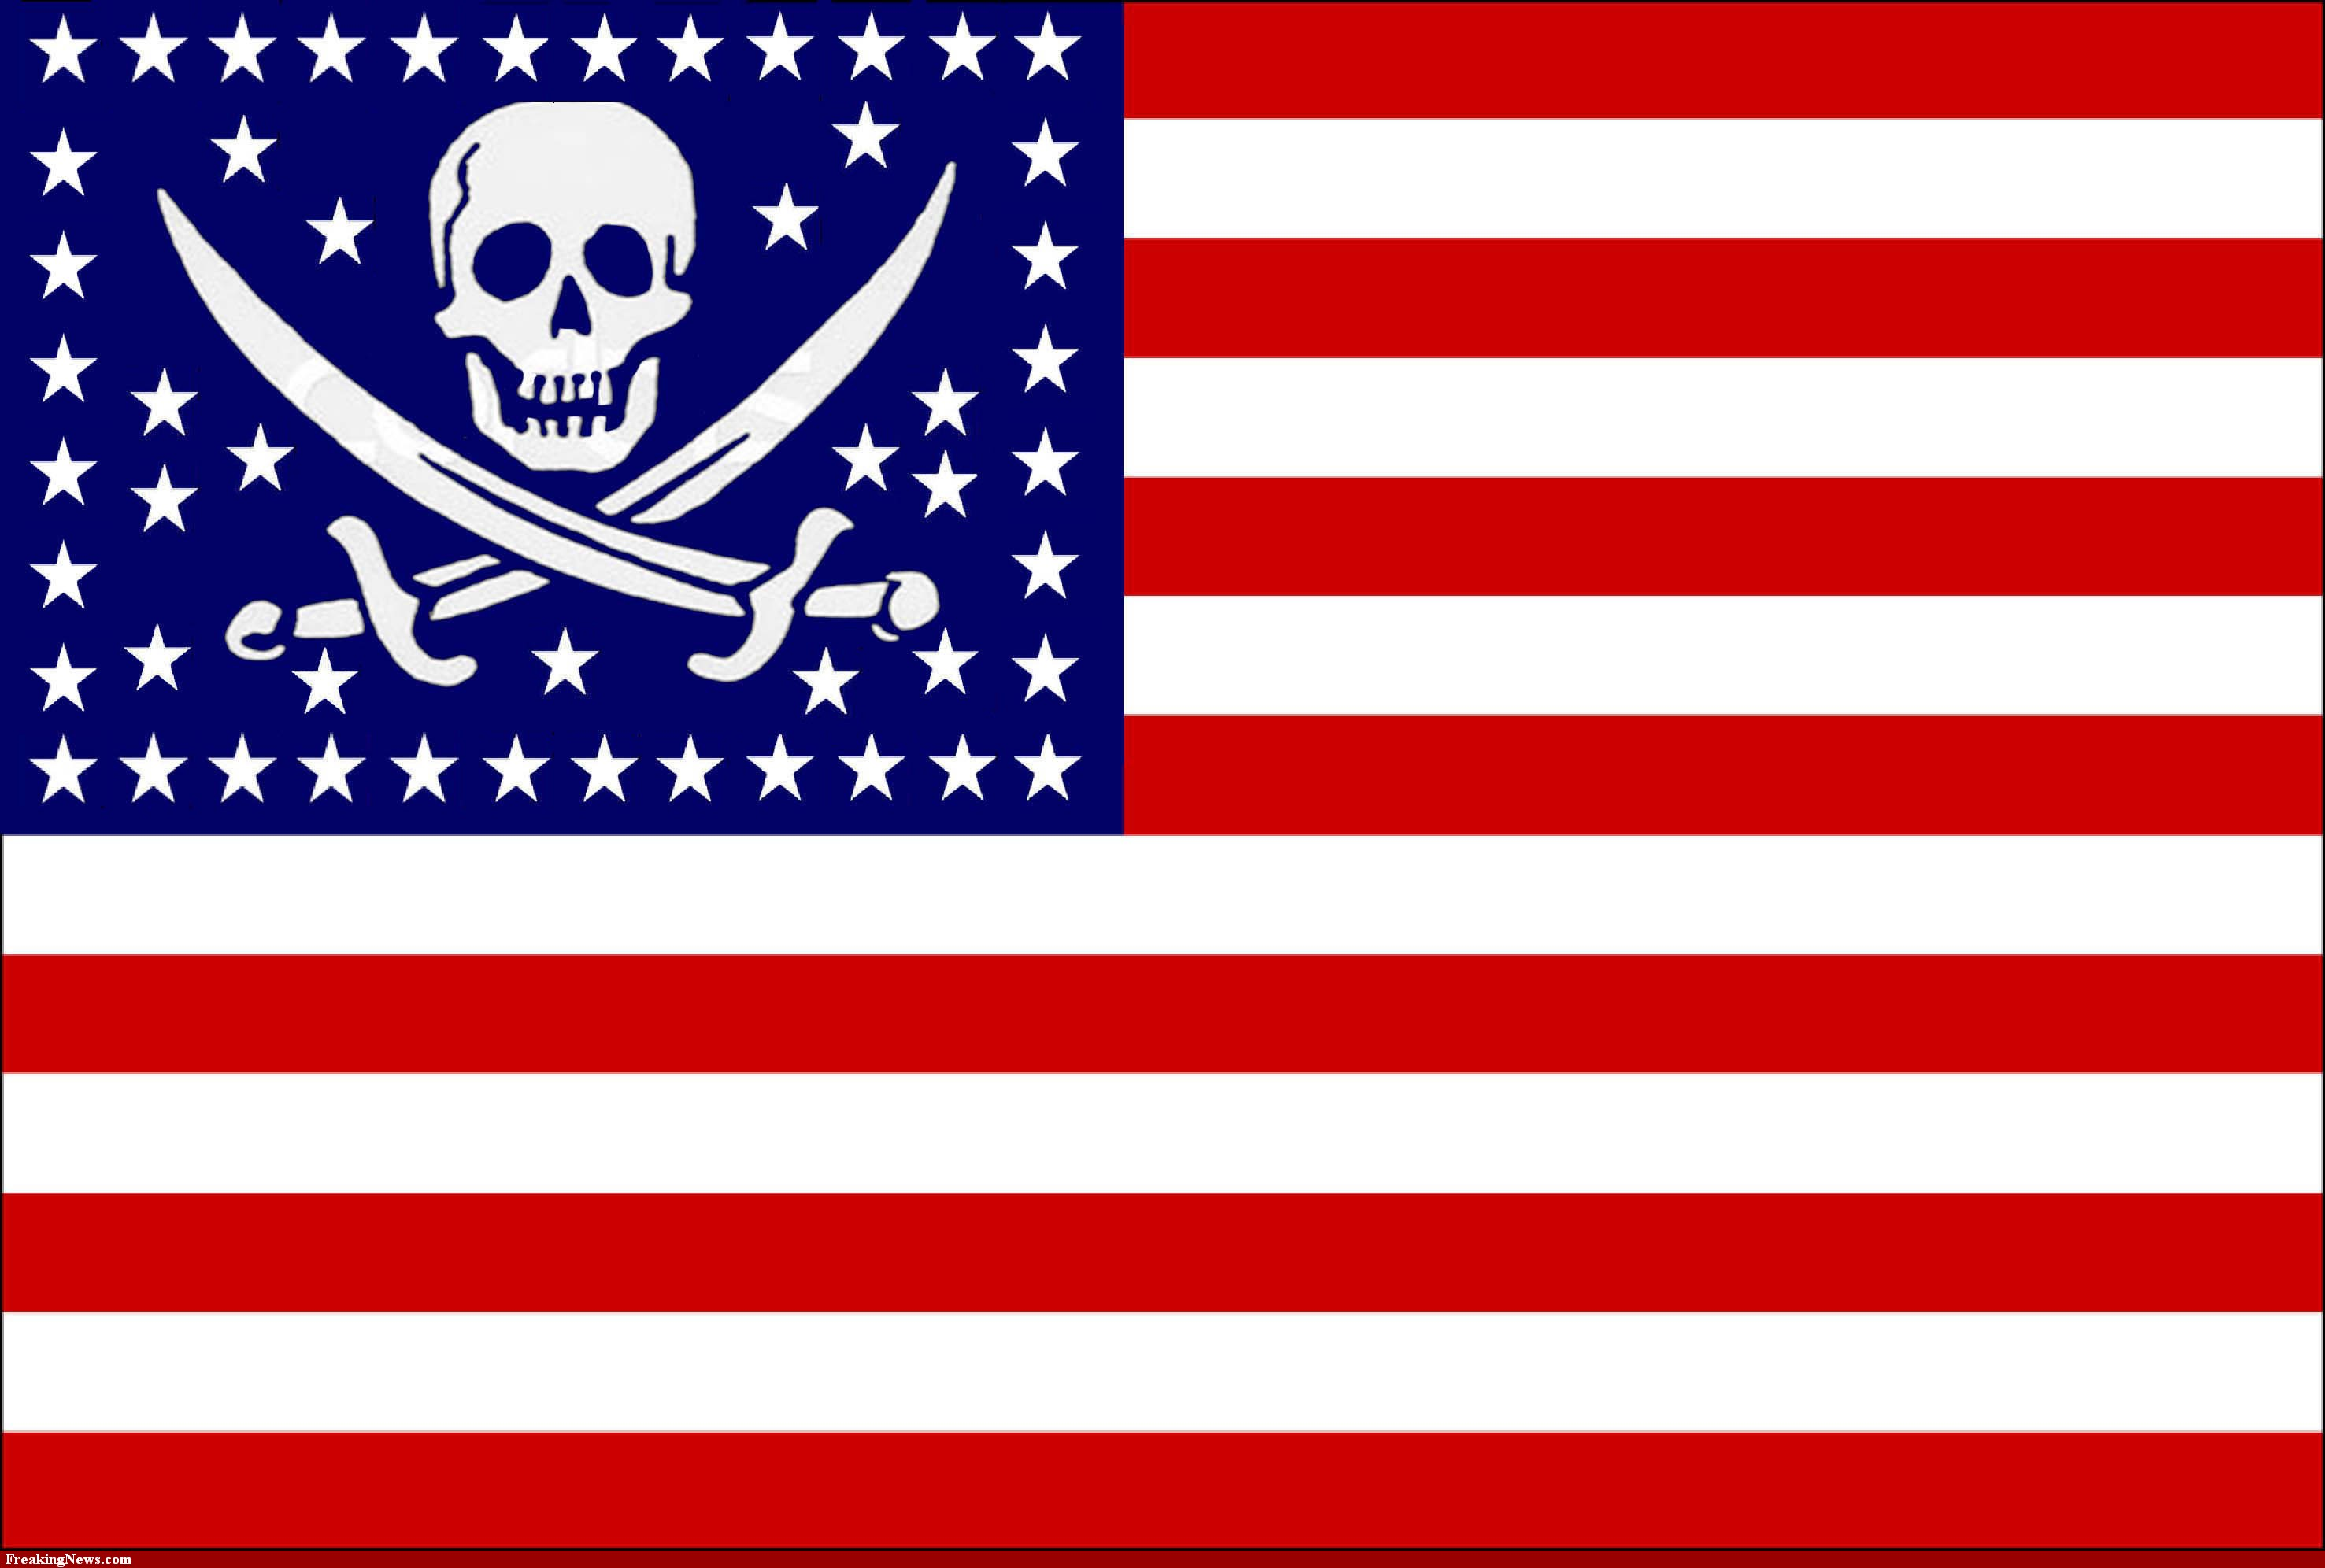 the-united-states-pirate-flag-90746.jpg